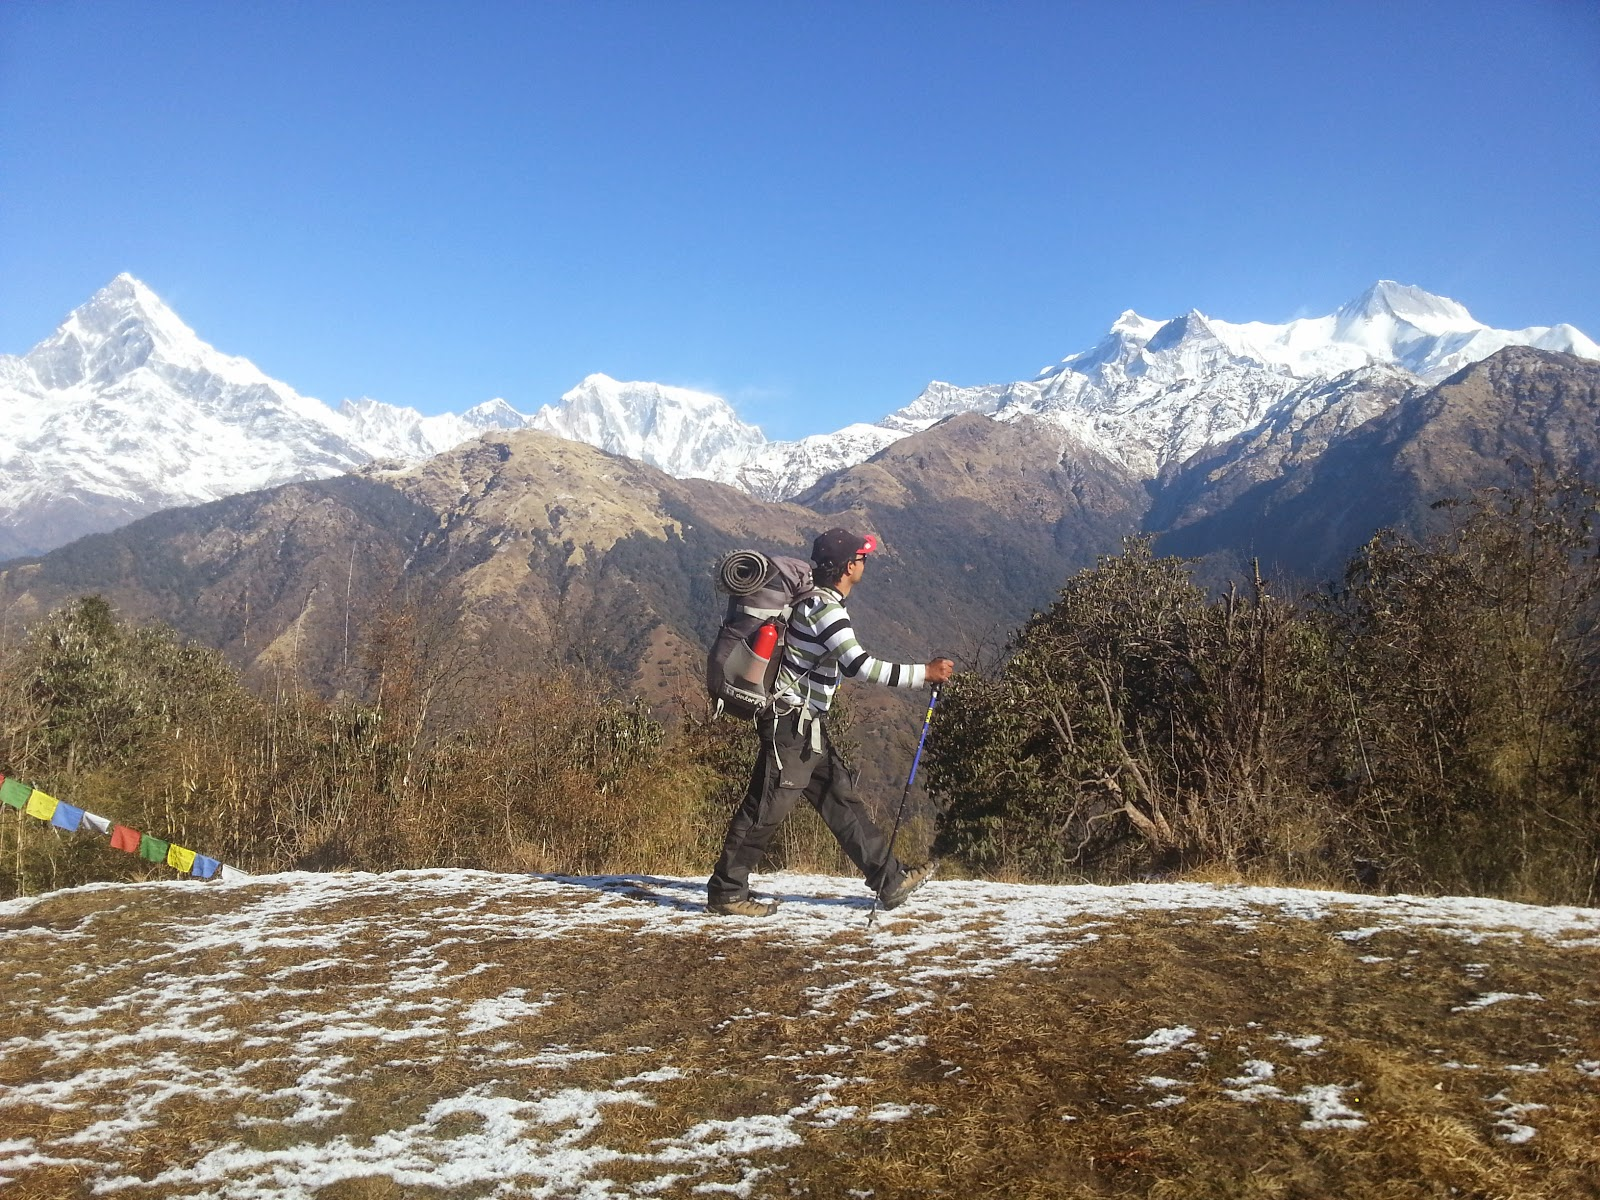 Nepal Trekking Destination in Nepal is Best During June, July, and August?